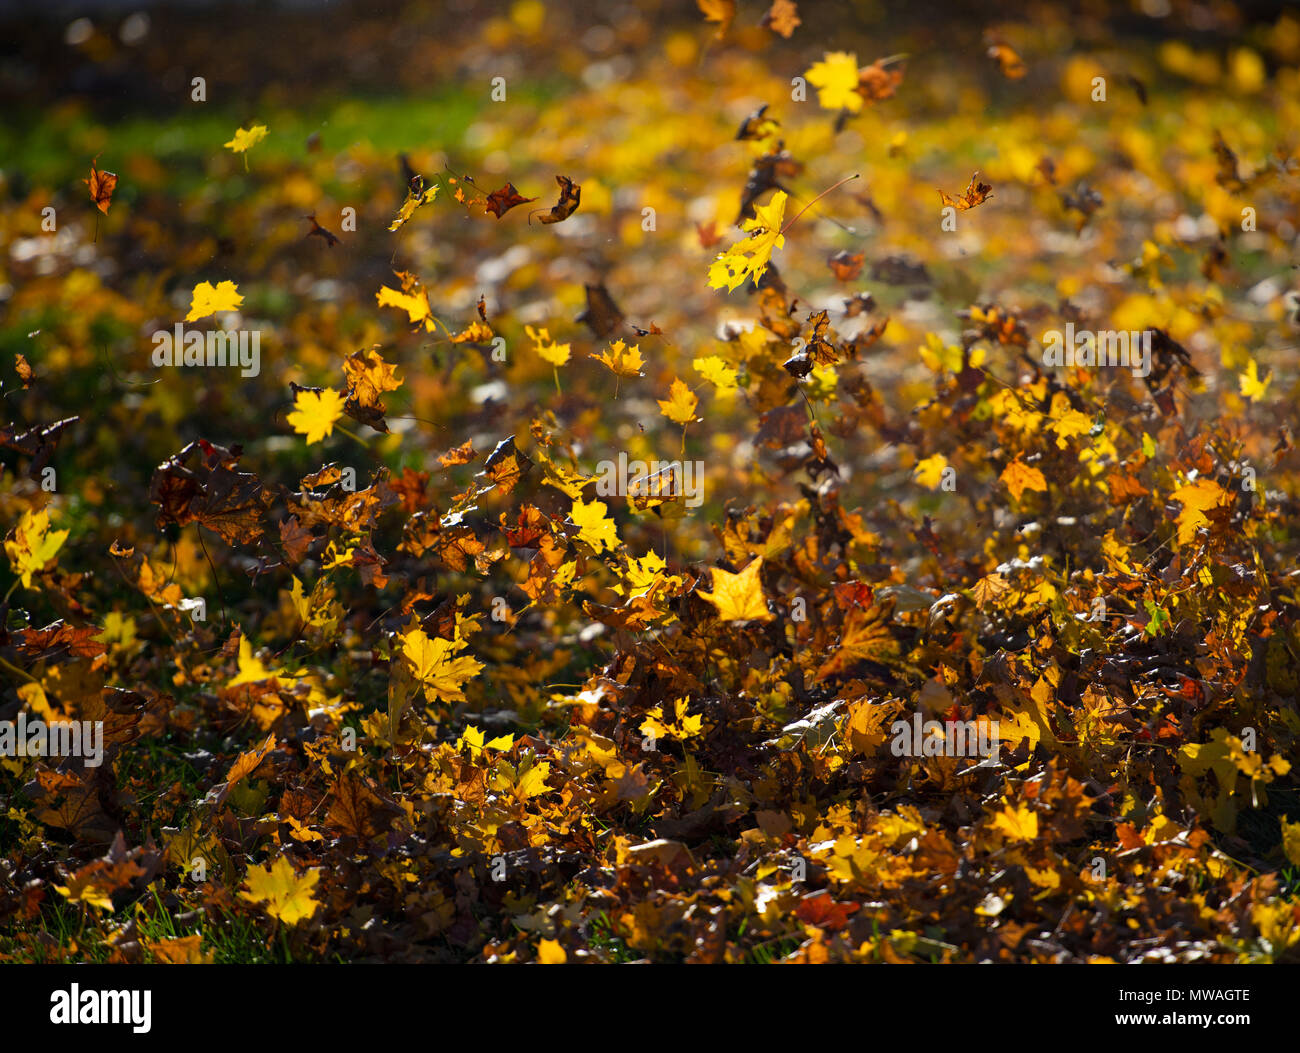 Autumn Leaves Blowing In The Wind Stock Photo Alamy